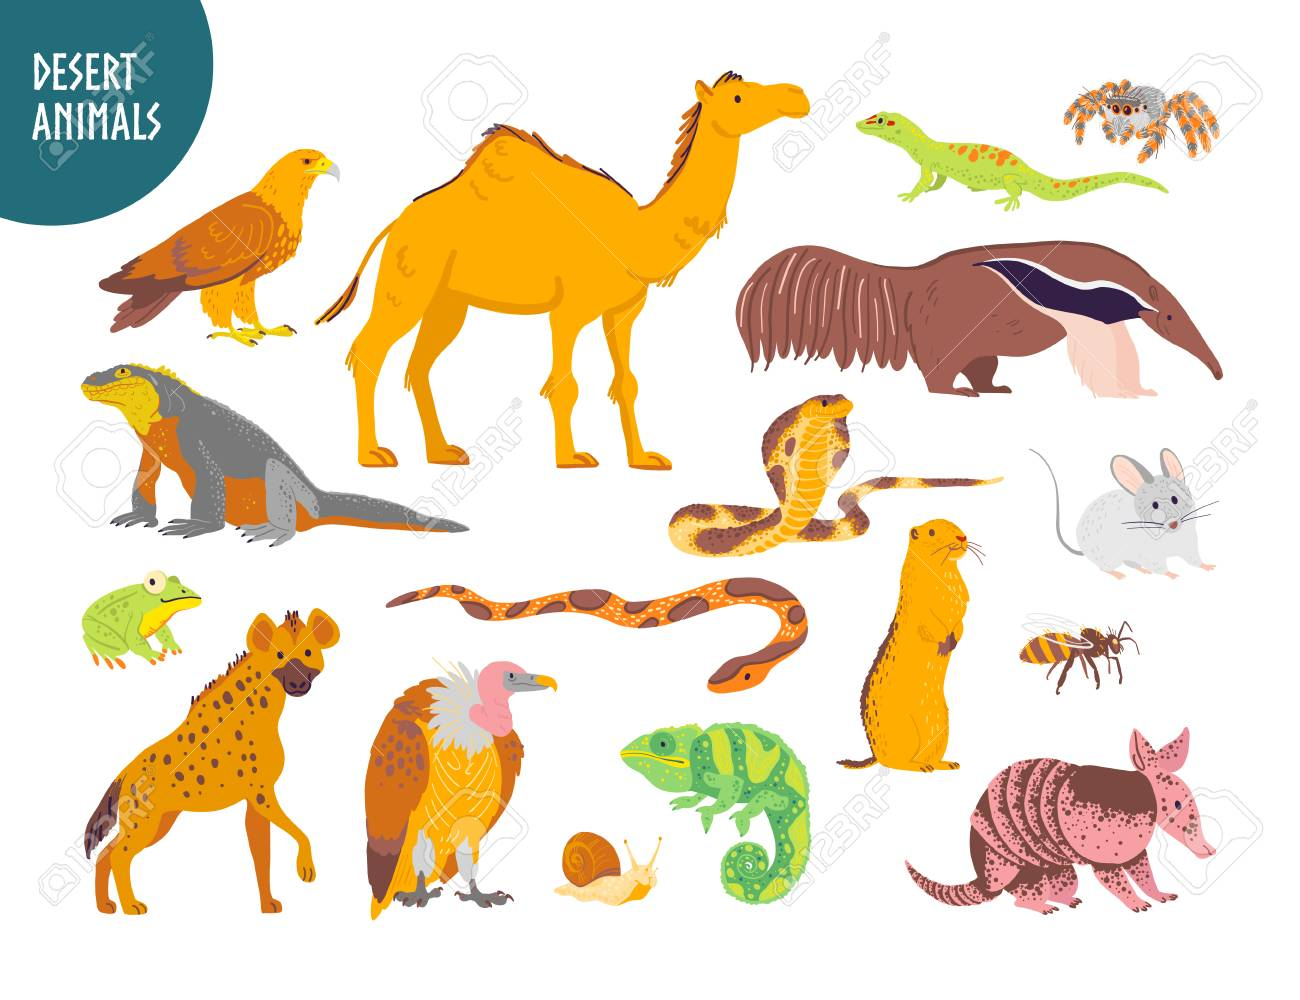 Vector collection of flat hand drawn desert animal, reptiles, insects: camel, snake, lizard isolated on white background. For children book illustration, alphabet, zoo emblems, banners, infographics. - 124768625